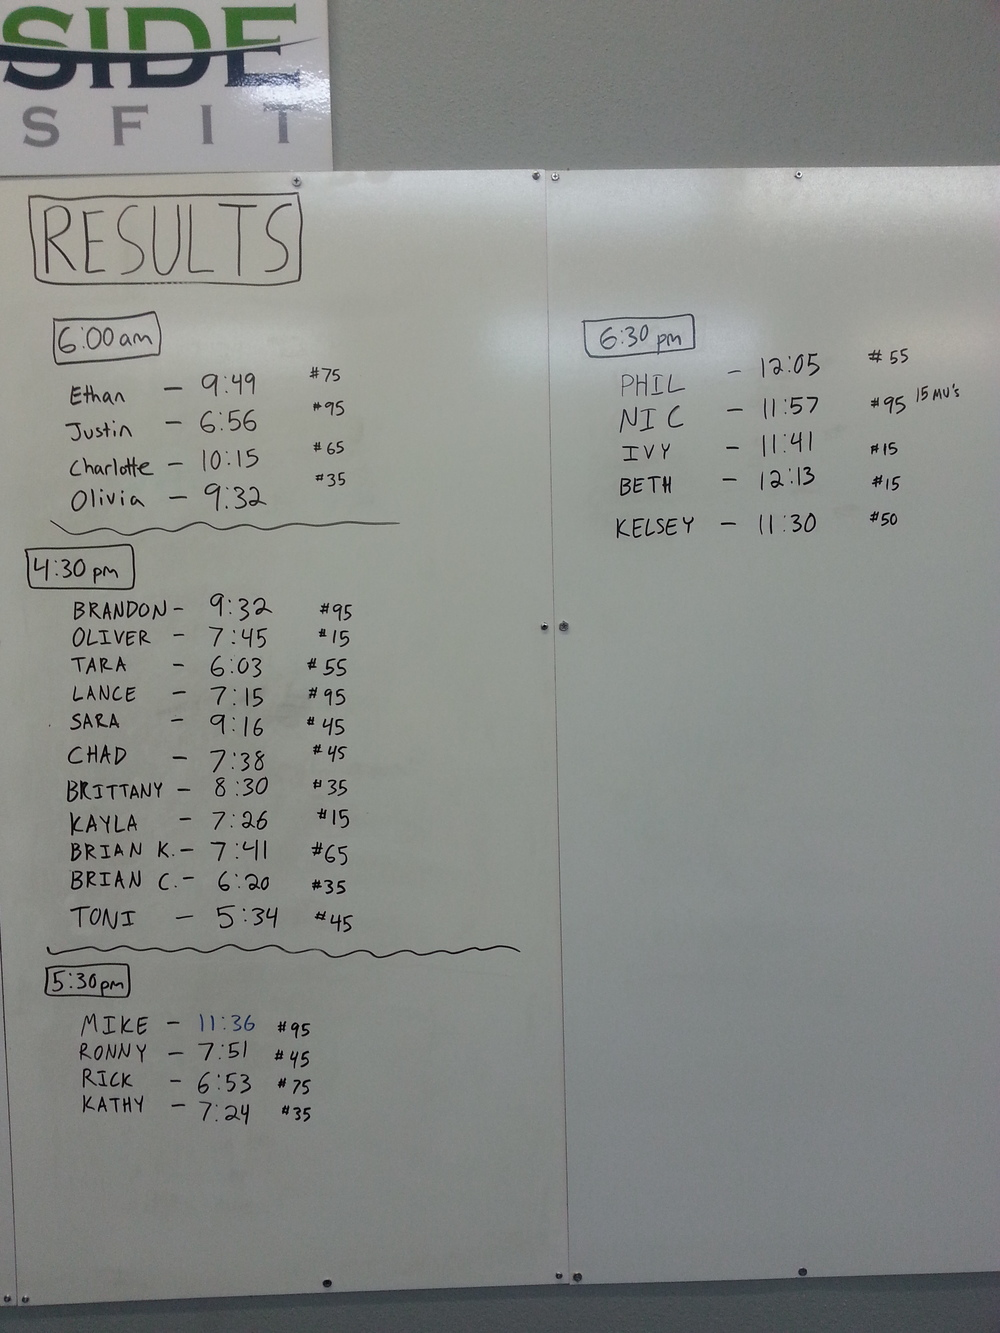 Times from the 7/30 WOD